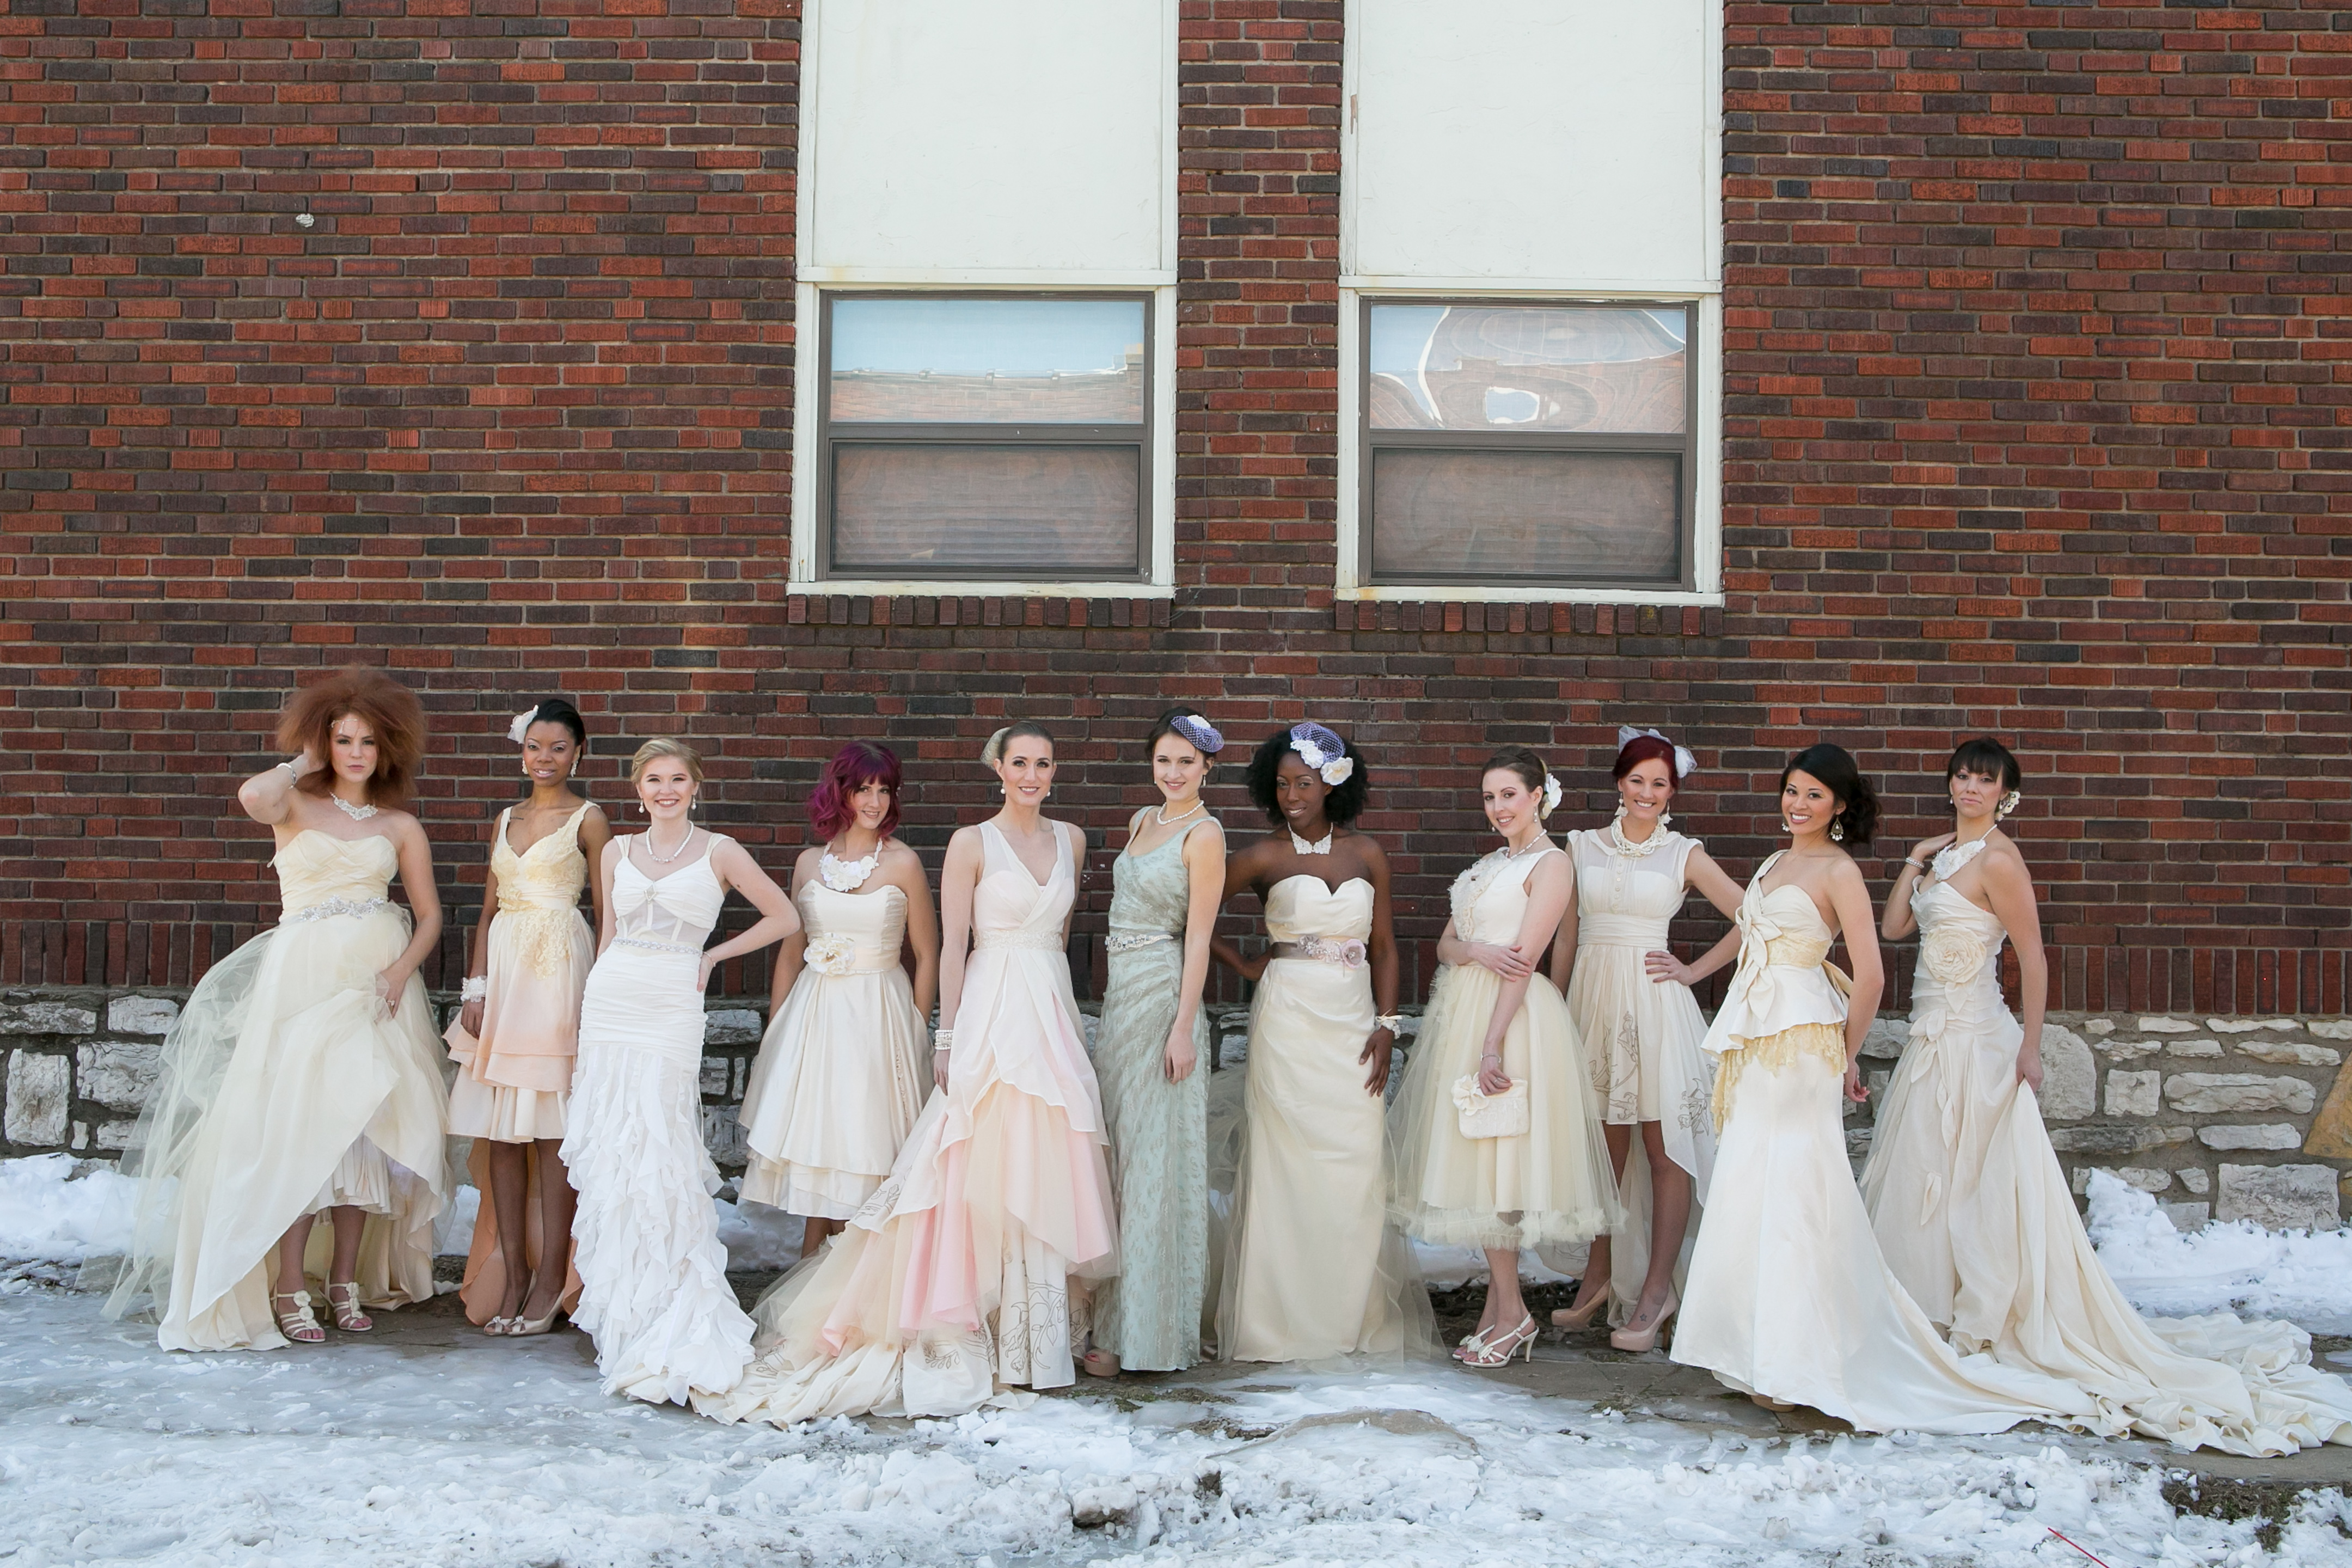 Overlay wedding dresses page 152 of 473 maternity wedding party junior bridesmaid dresses kansas city 61 ombrellifo Gallery